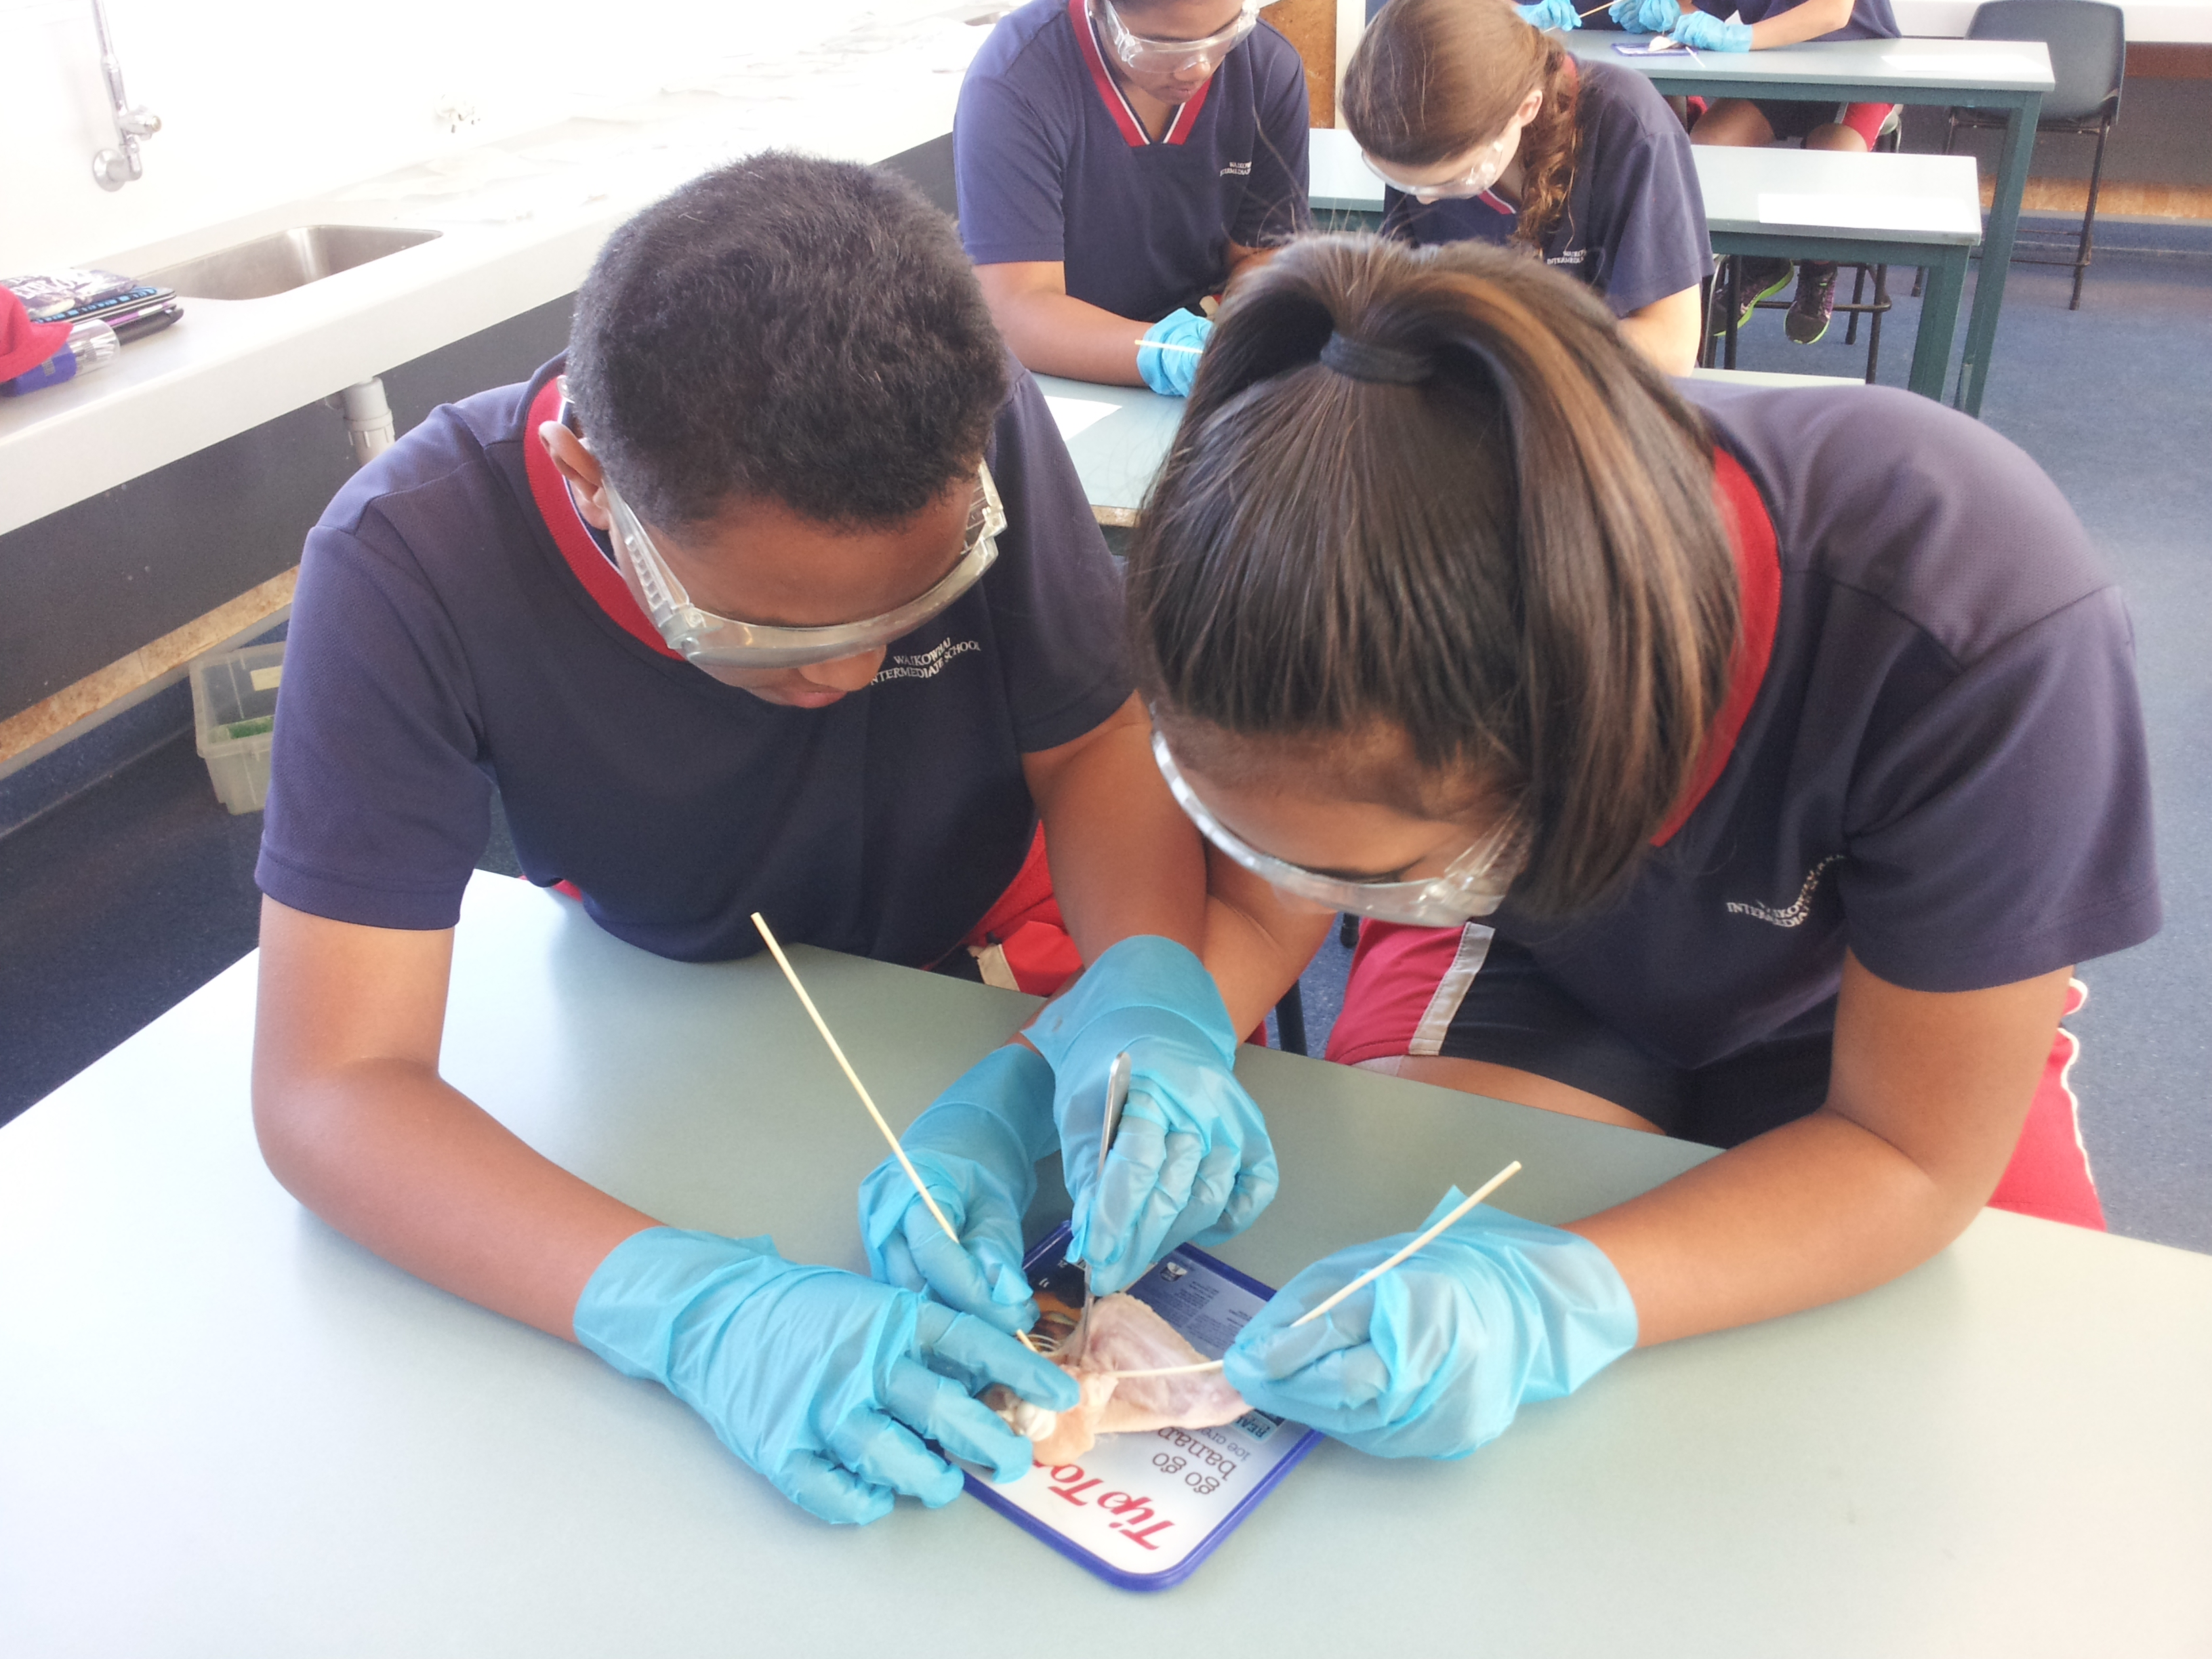 Dissecting for discovery